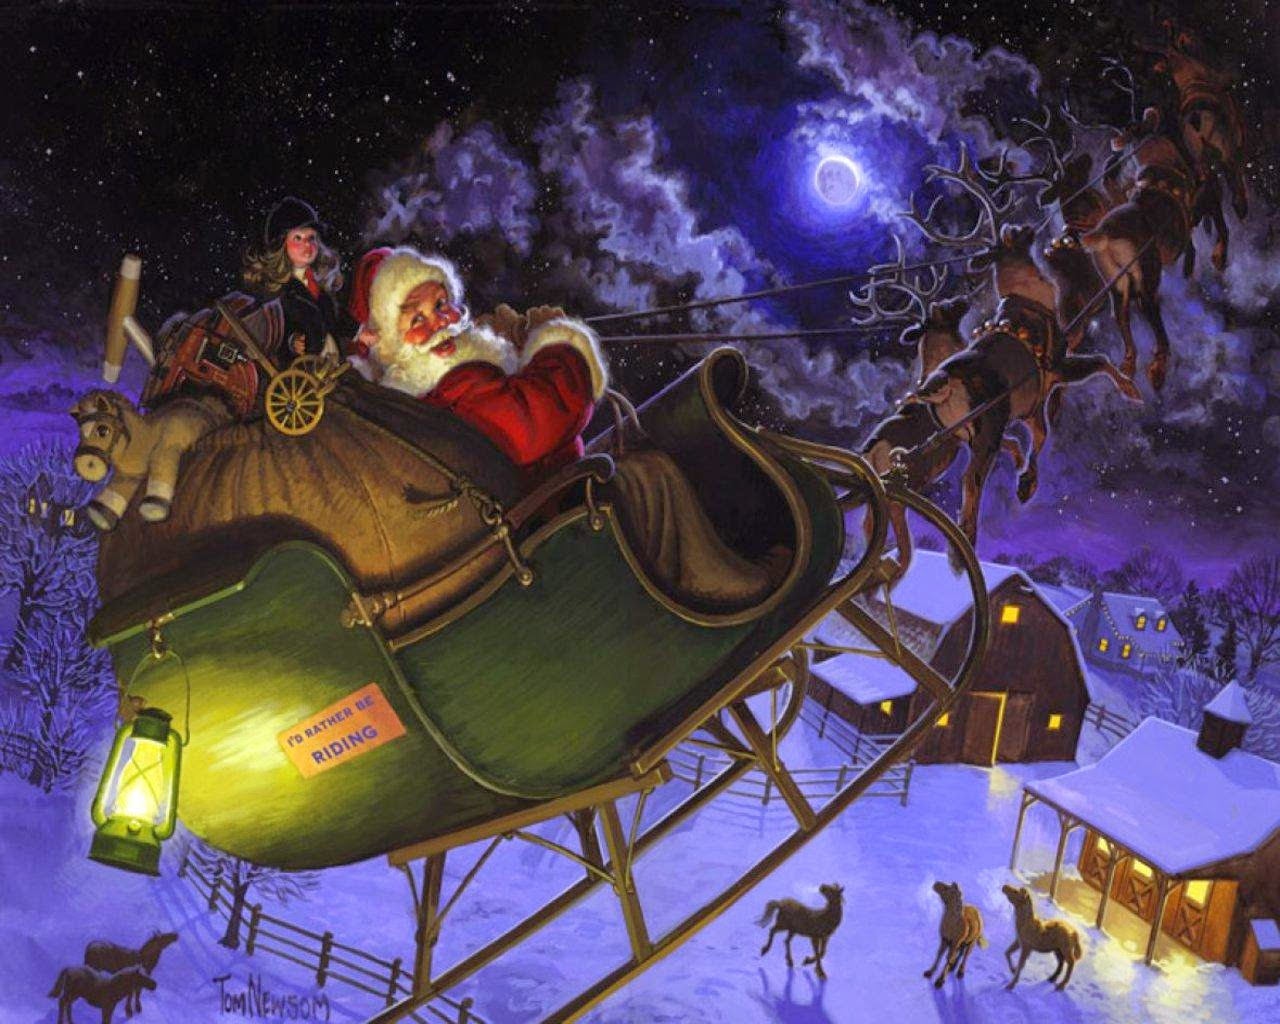 Santa-flying-above-snow-town-with-kid-girl-sleigh-reindeer-christmas-night-1280x1024.jpg